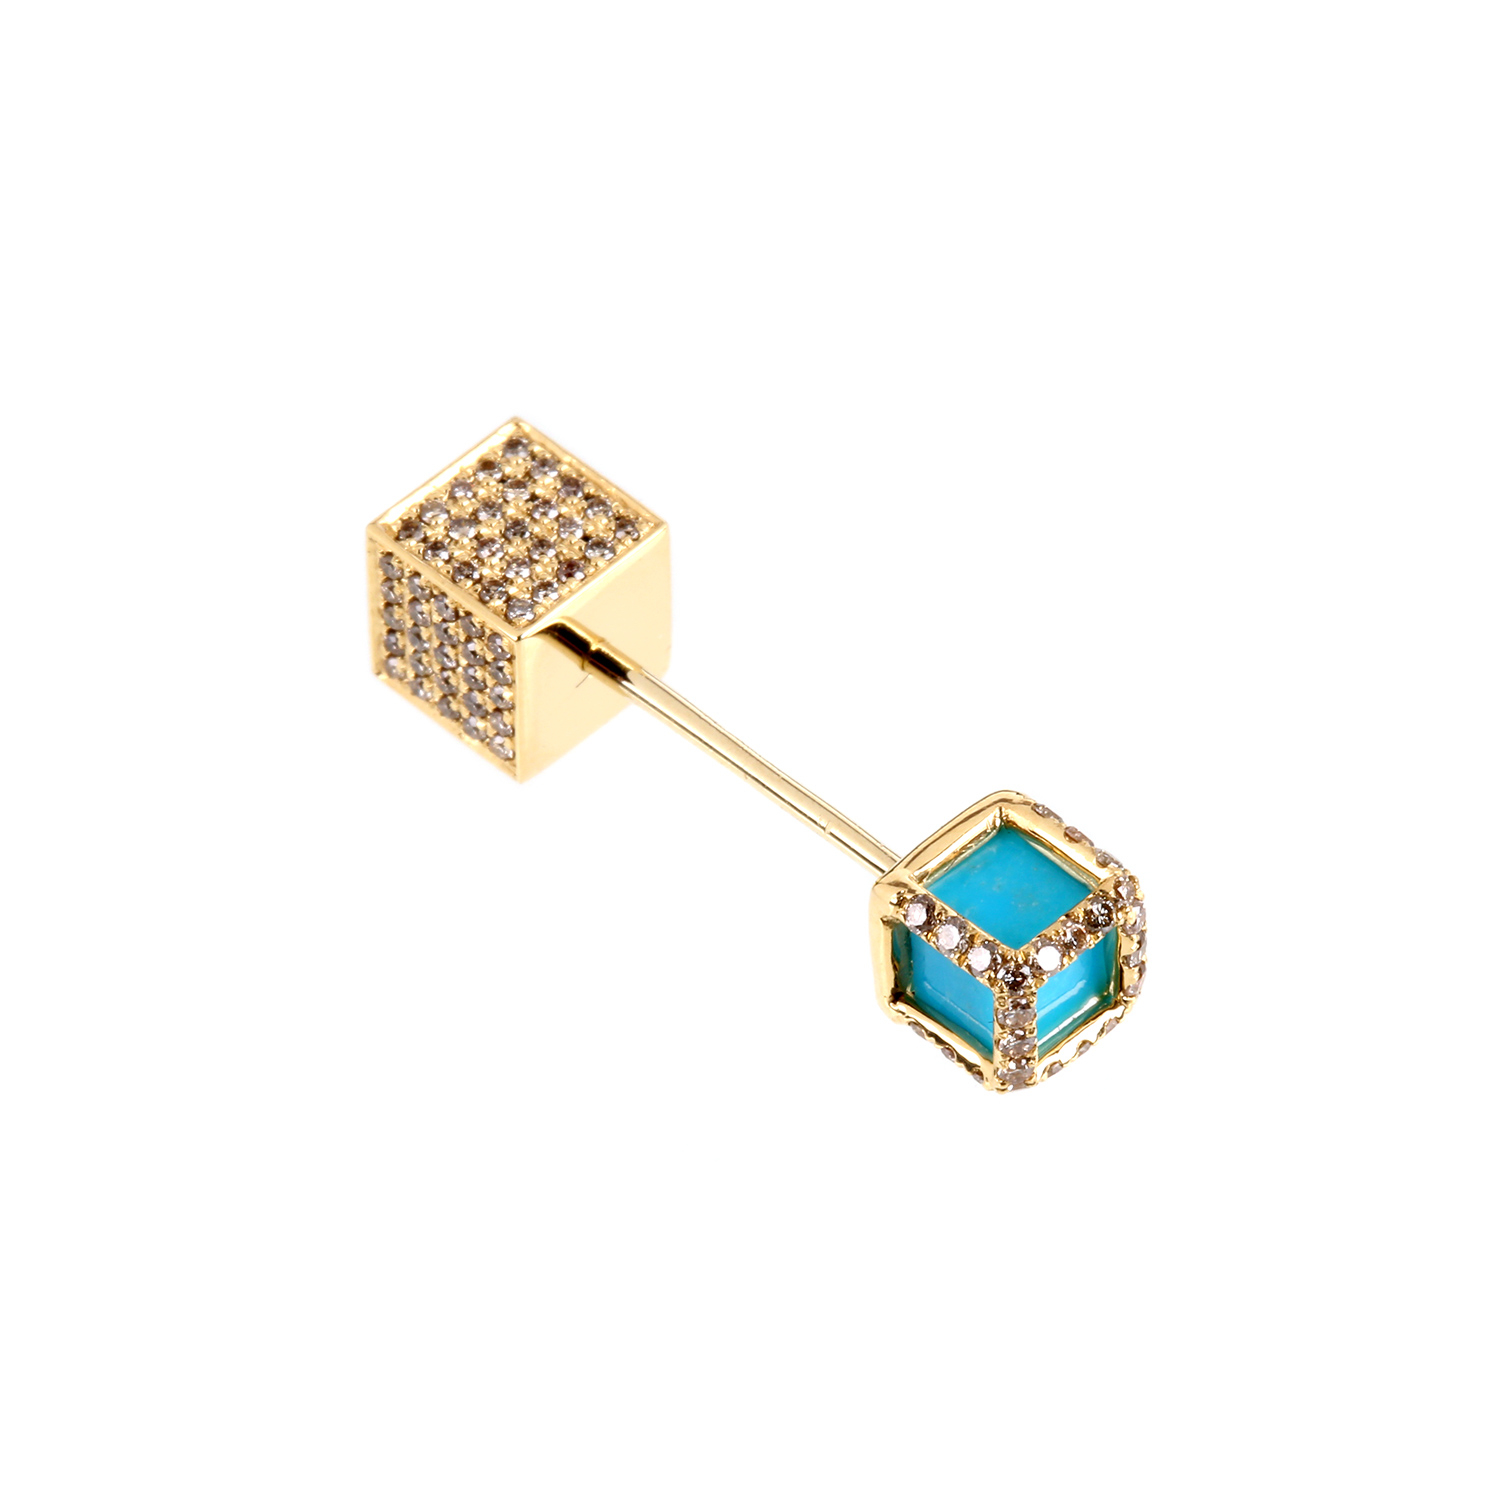 Elise dray Earring in Blue (OR JAUNE)